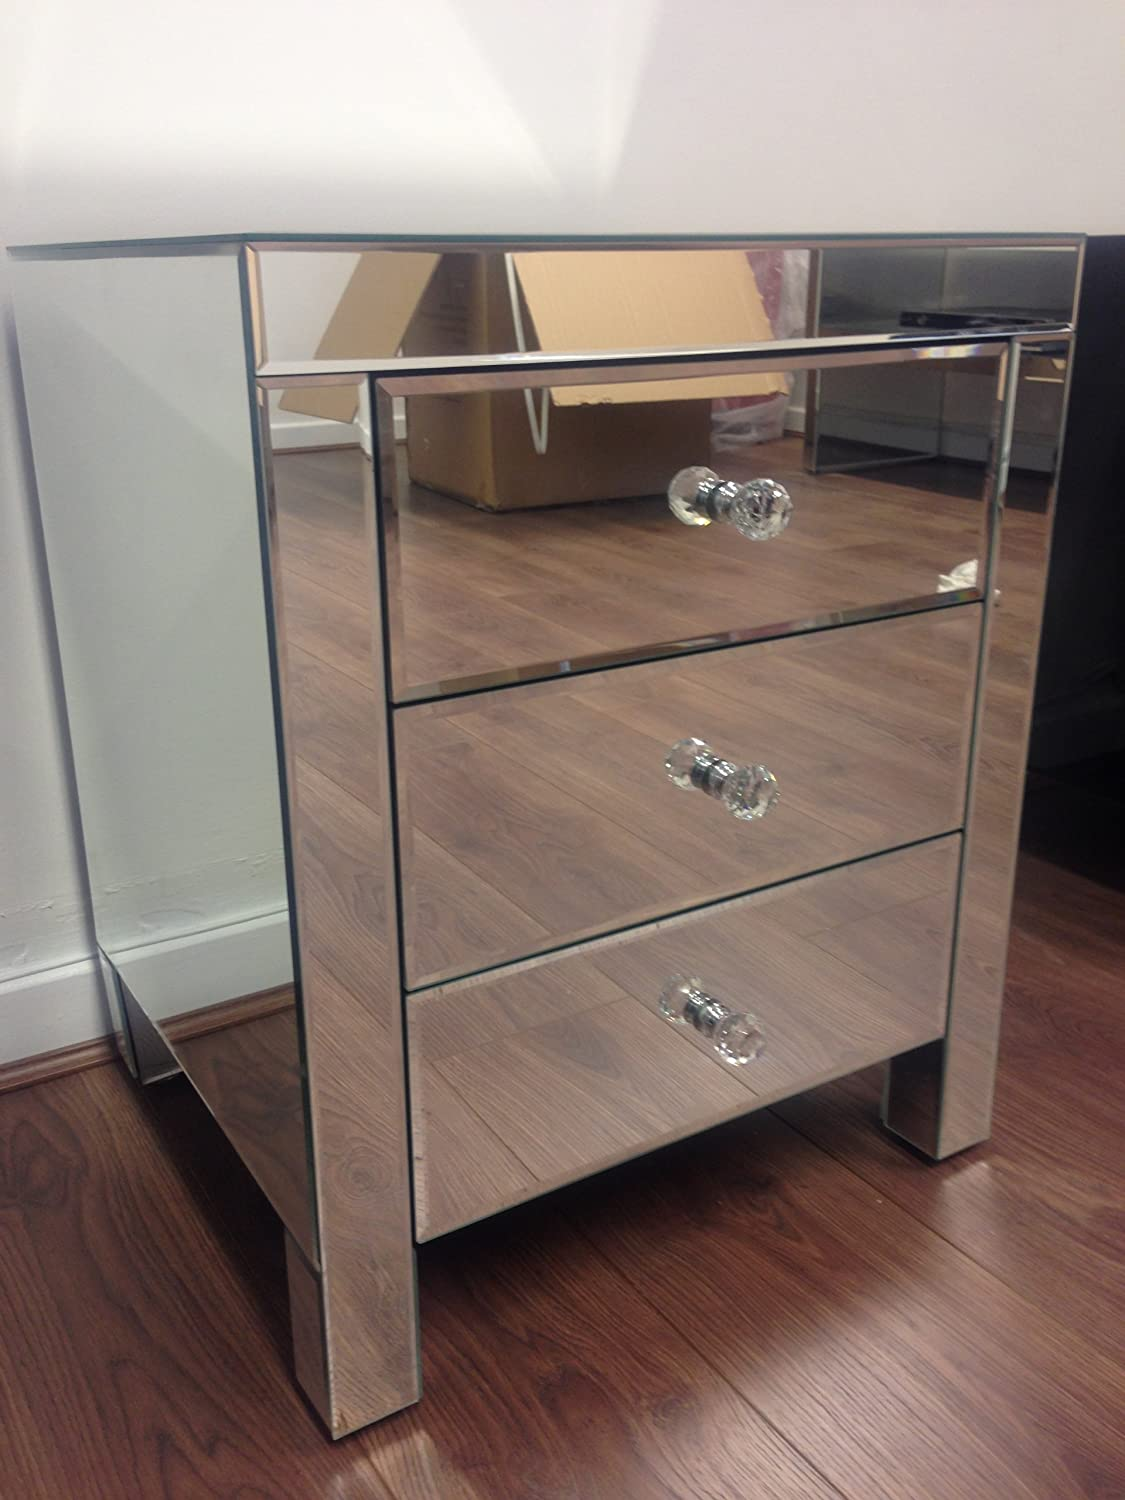 Mirrored Furniture Mirrored Furniture Bedside Table Cabinet 3 Drawers X 1 Sophie